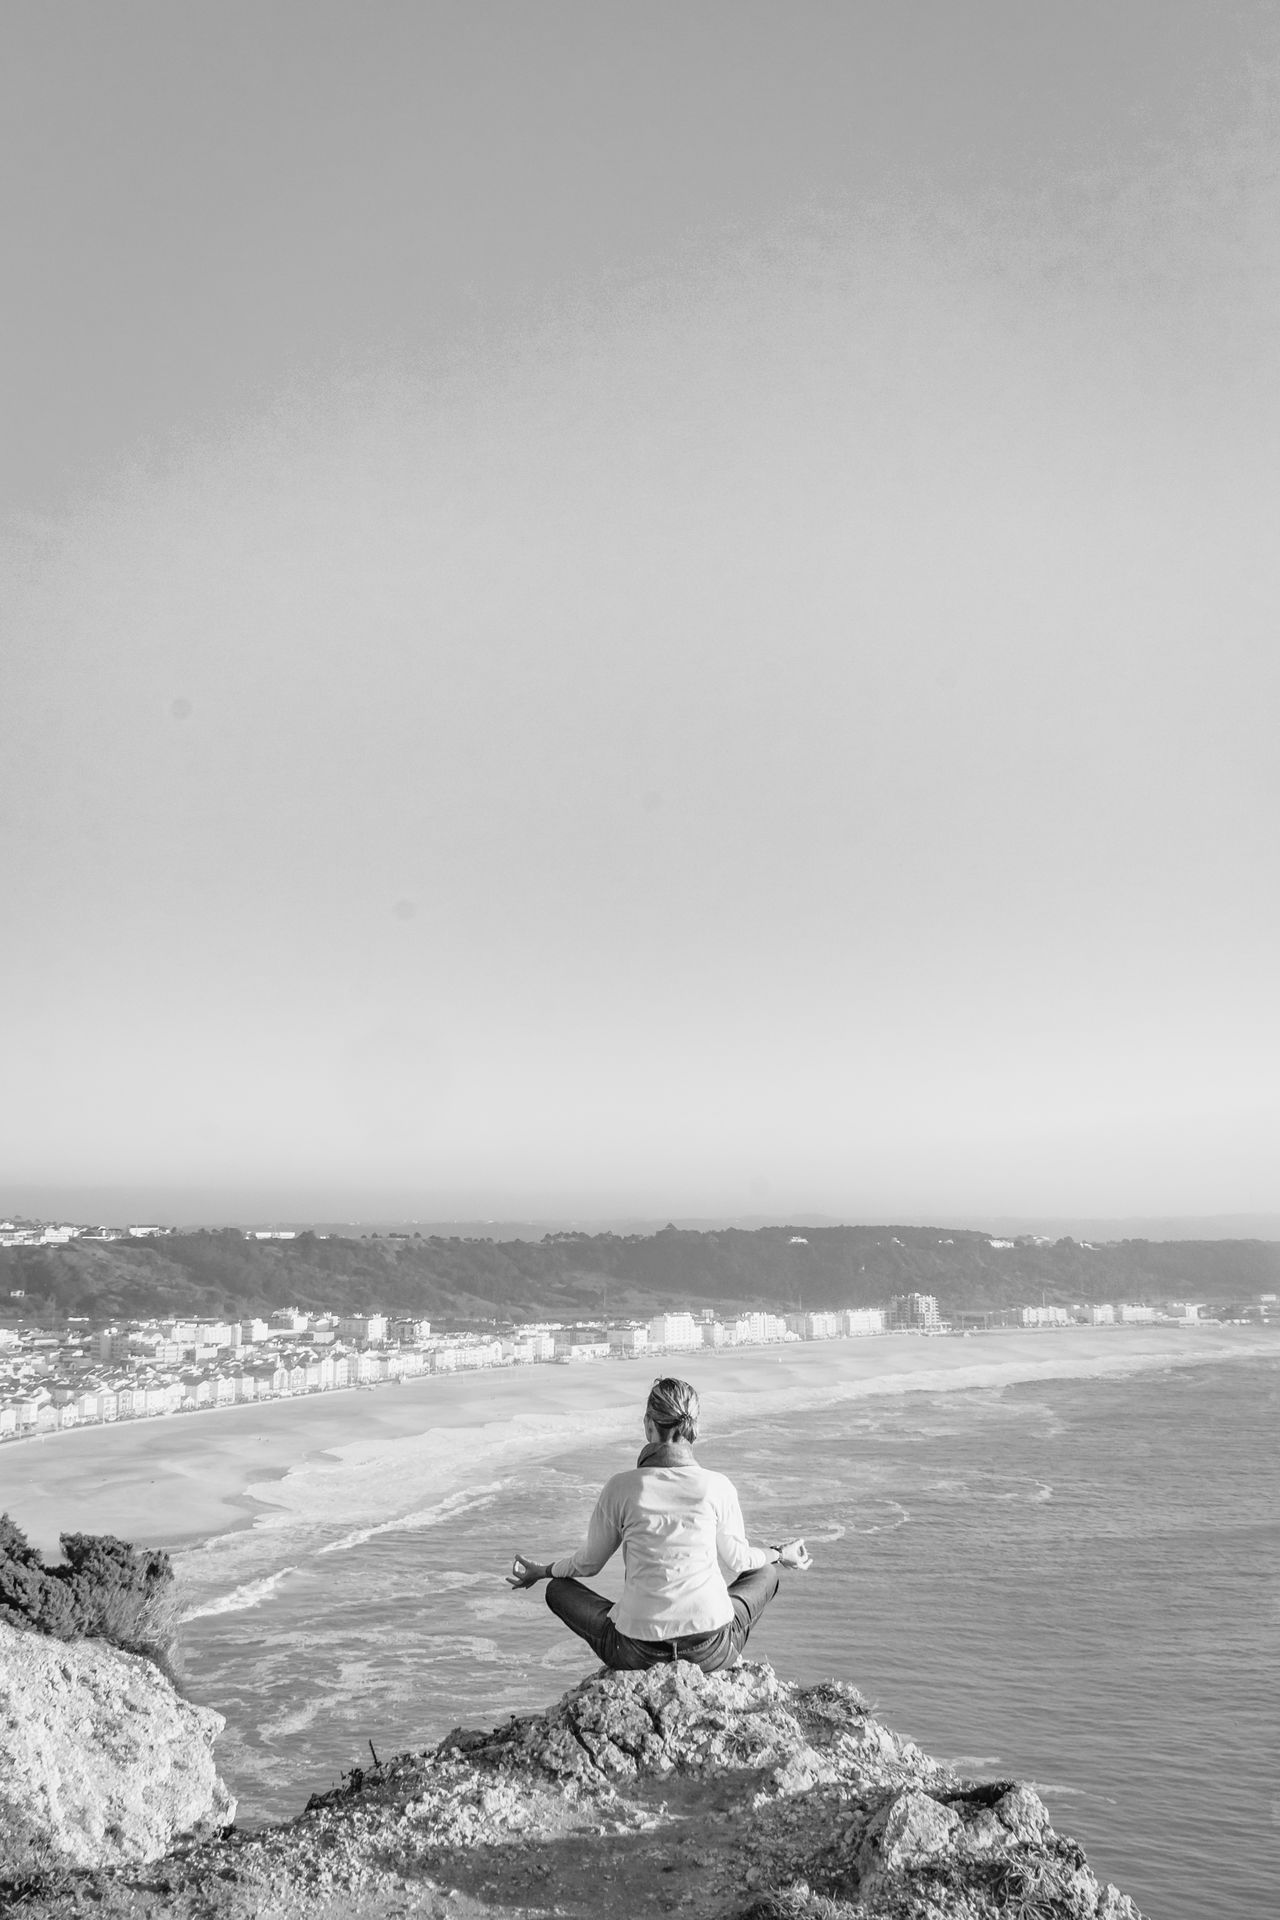 Beach Beauty In Nature Black Black & White Black And White Black And White Photography Blackandwhite Cliff Lanscape Meditate Meditation Nature On The Edge One Person Only Women Peace And Quiet Reflection Rock Scenic Sea Sea And Sky Sky View From Above Water Women